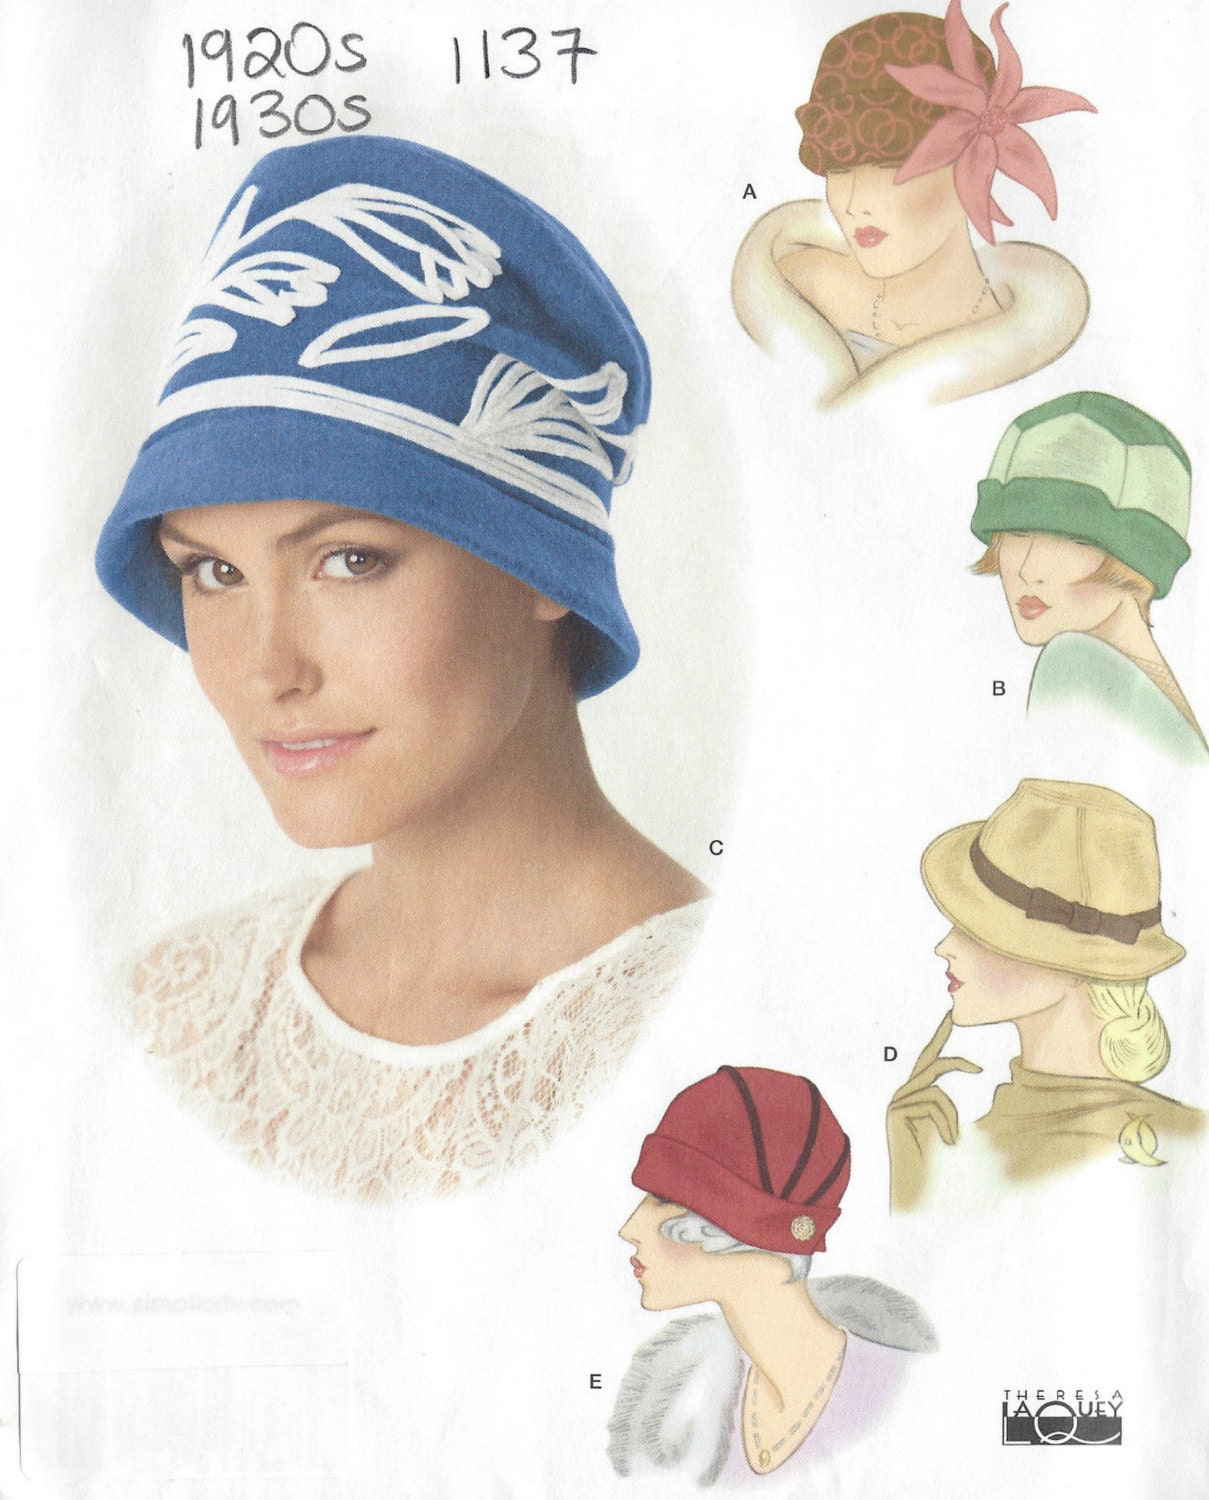 5873b62d8b7 1920s   1930s Vintage Sewing Pattern HAT S21-22-23 ins (1137R) Simplicity  1736 from tvpstore on Etsy Studio